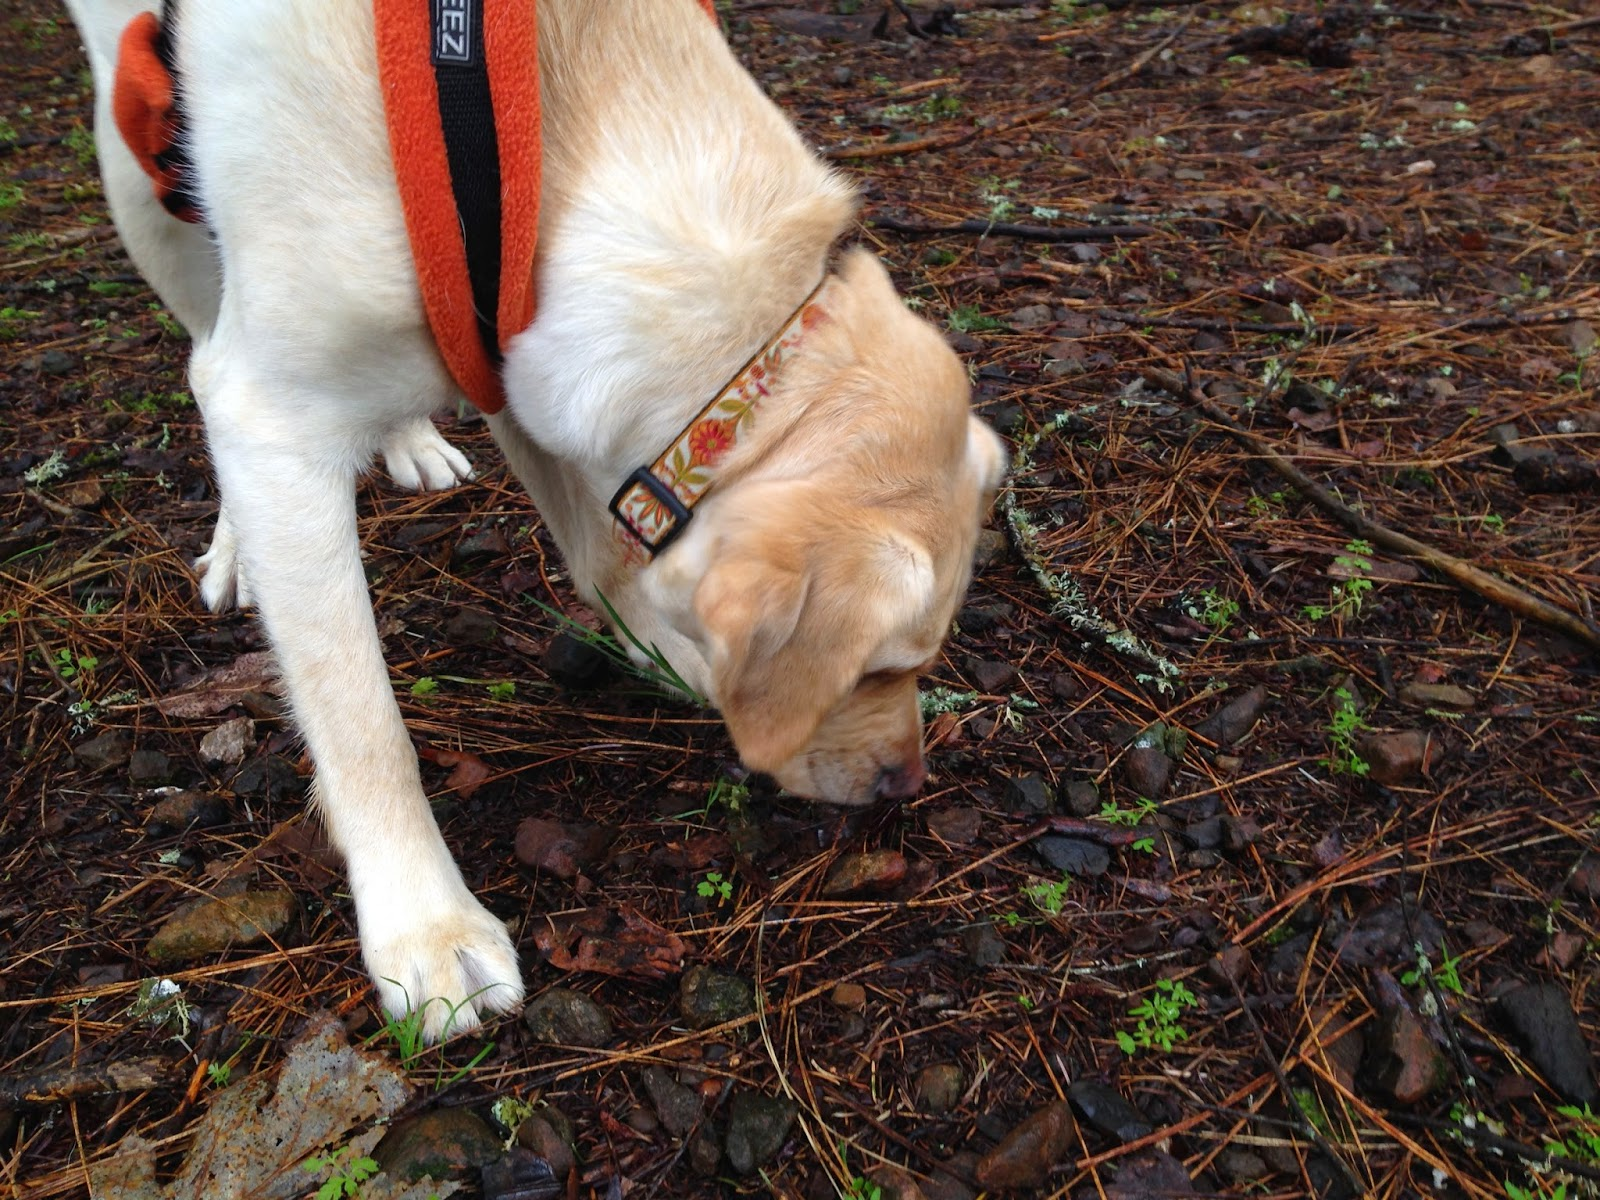 Gucci (yellow Lab) wearing her orange harness sniffs low to the ground in the forest.